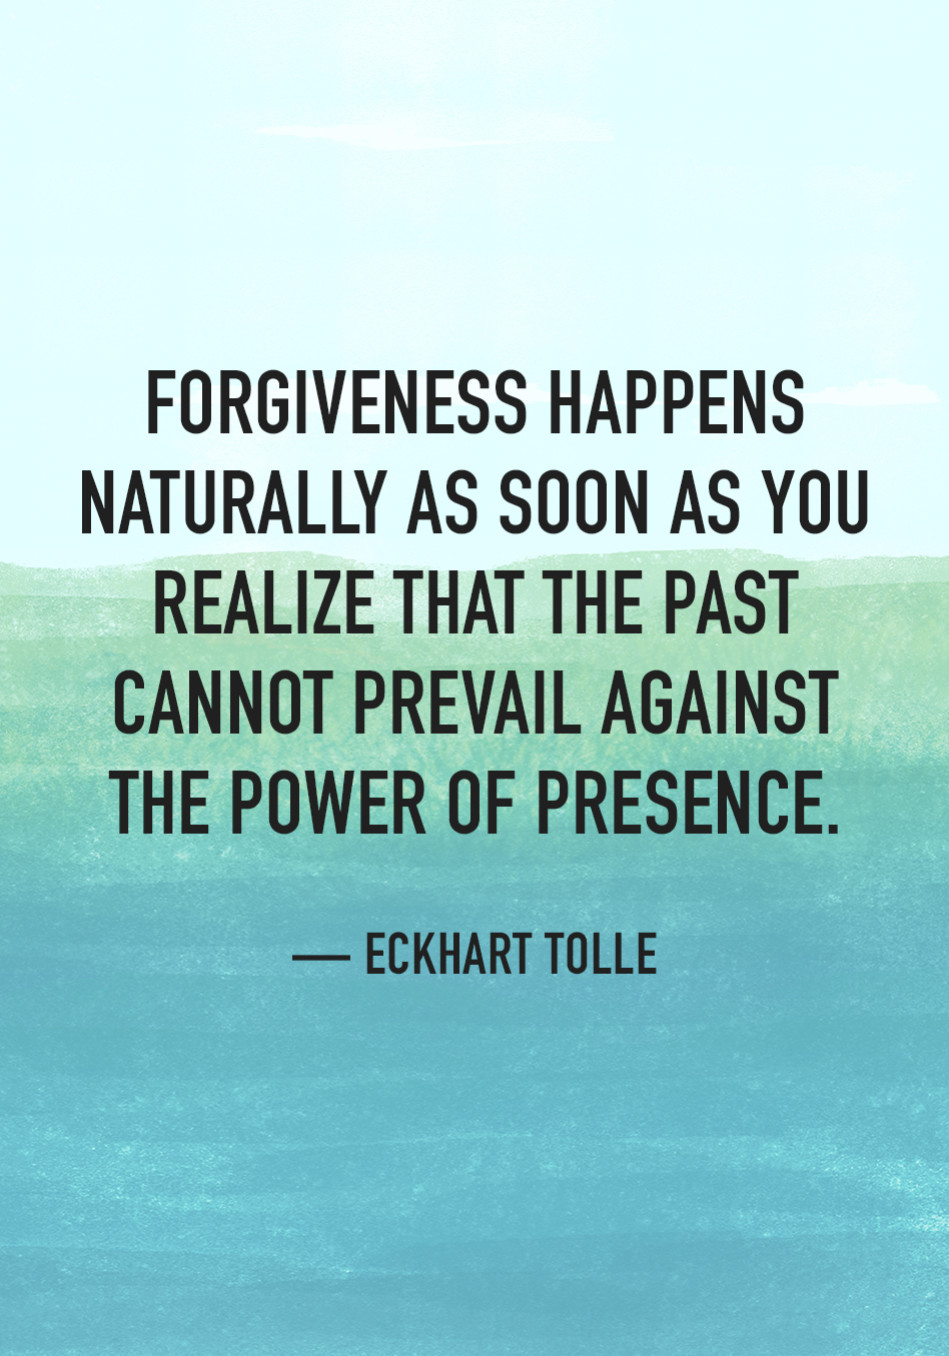 Spiritual Quotes About Life Changes Eckhart Tolle's Guide To Transforming Your Life